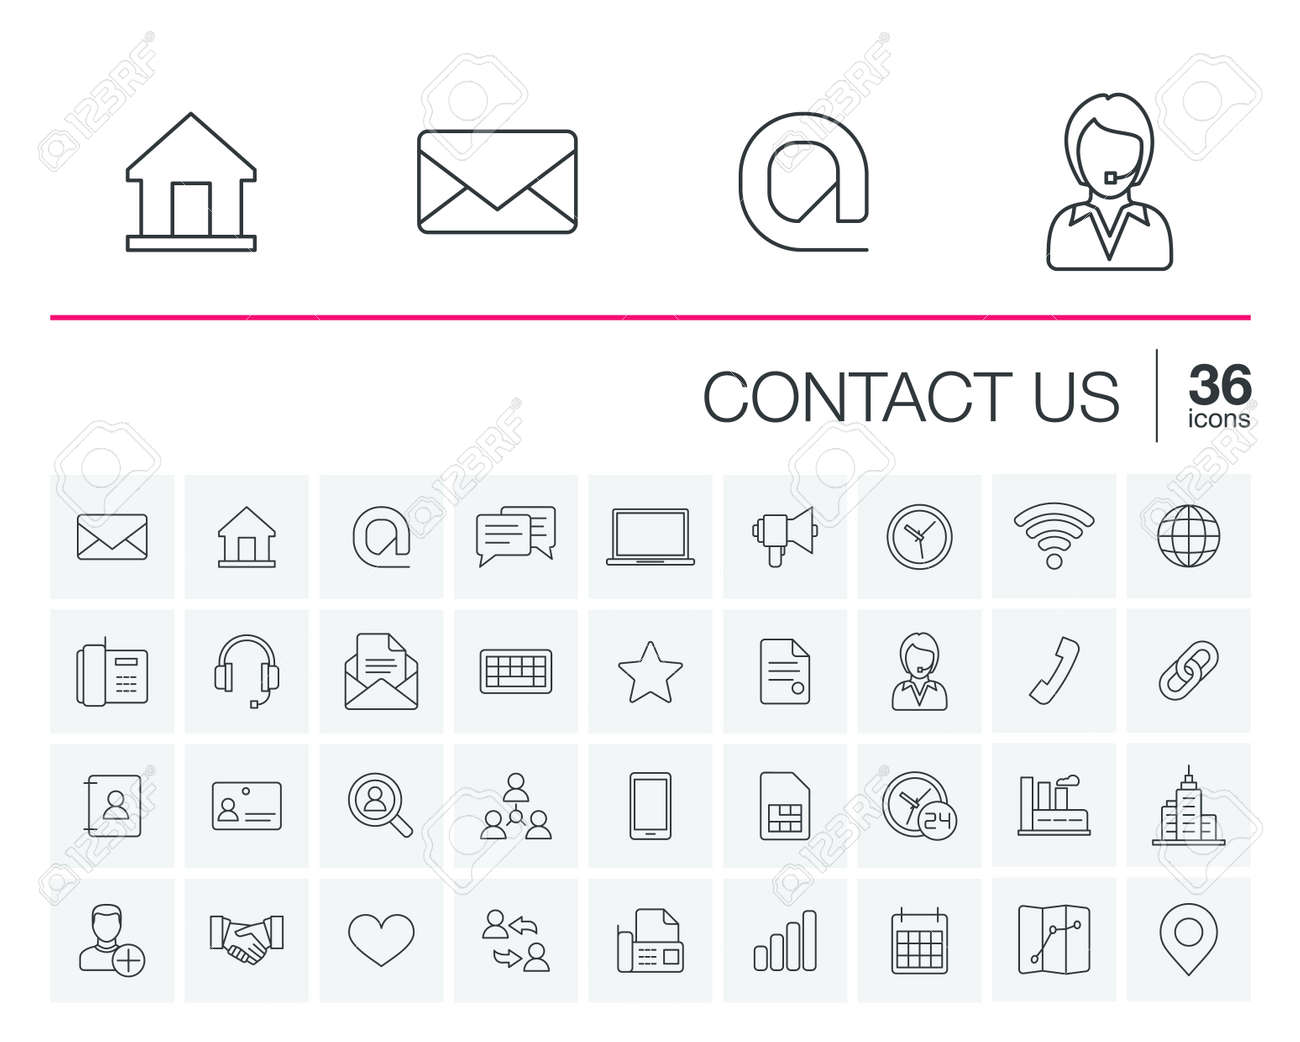 thin line icons set and graphic design elements. Illustration with contact us outline symbols. Communication, home, call, speech bubble, email, letter, envelope, handshake linear pictogram - 53667098